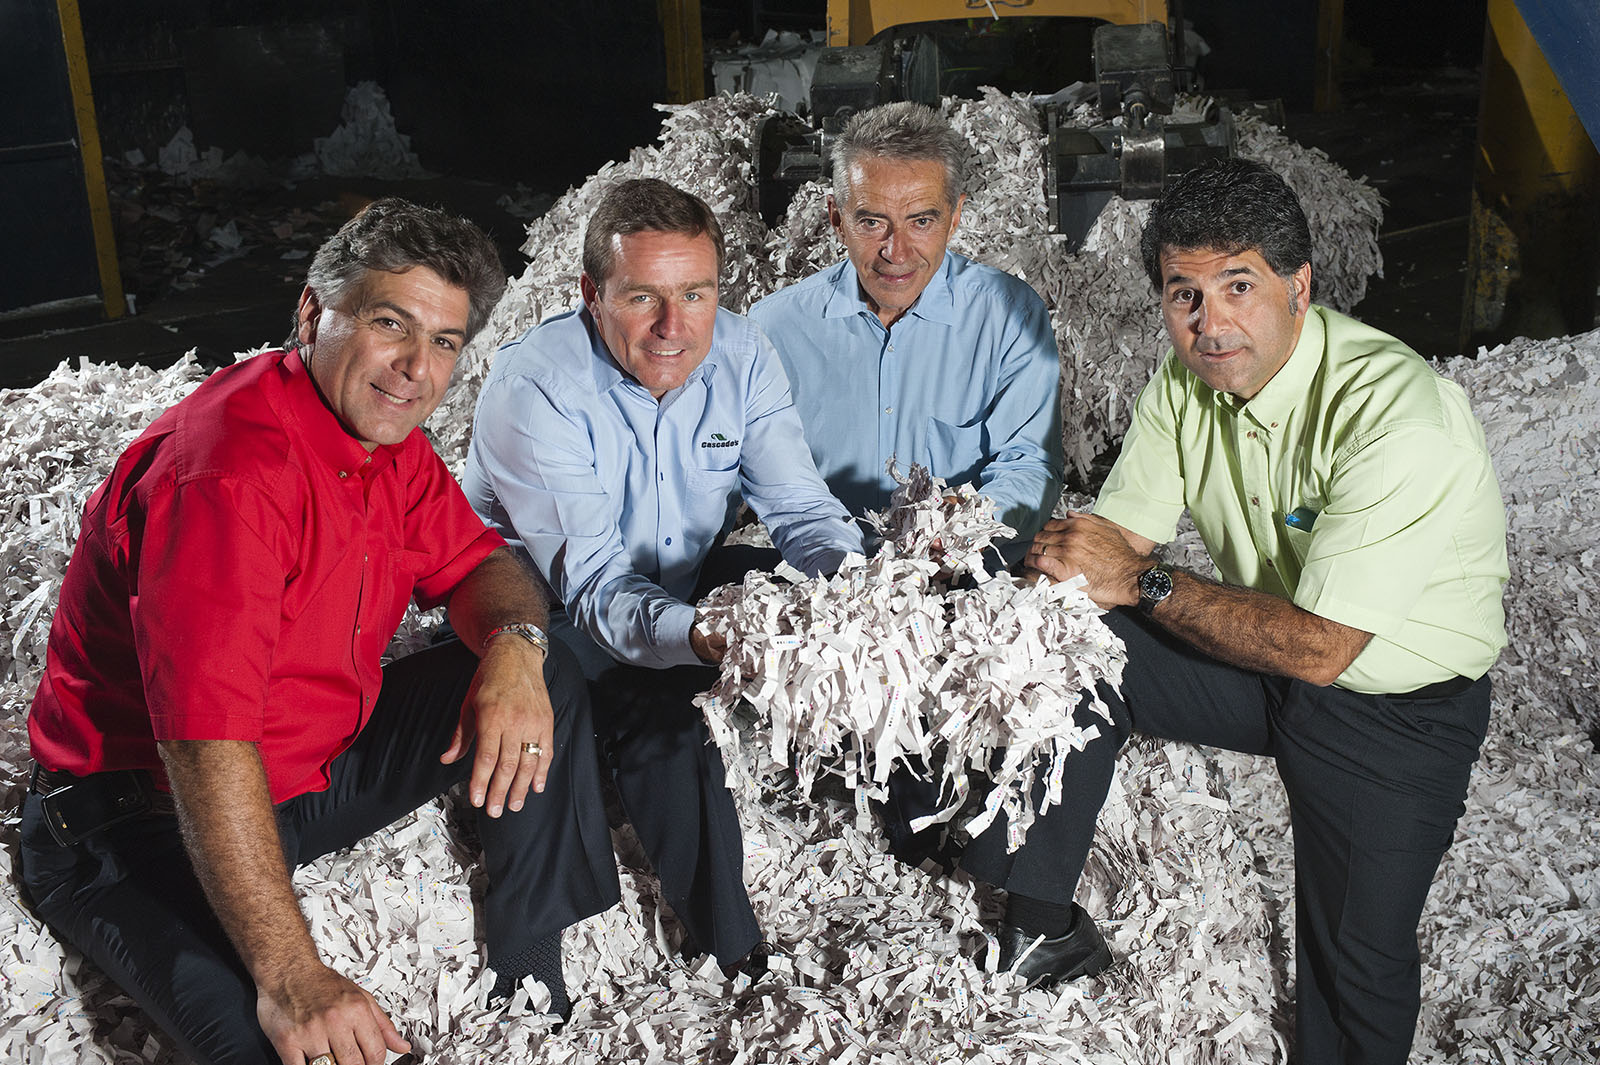 Four men examining shredded paper at Cascades recycling plant, Toronto, Ontario